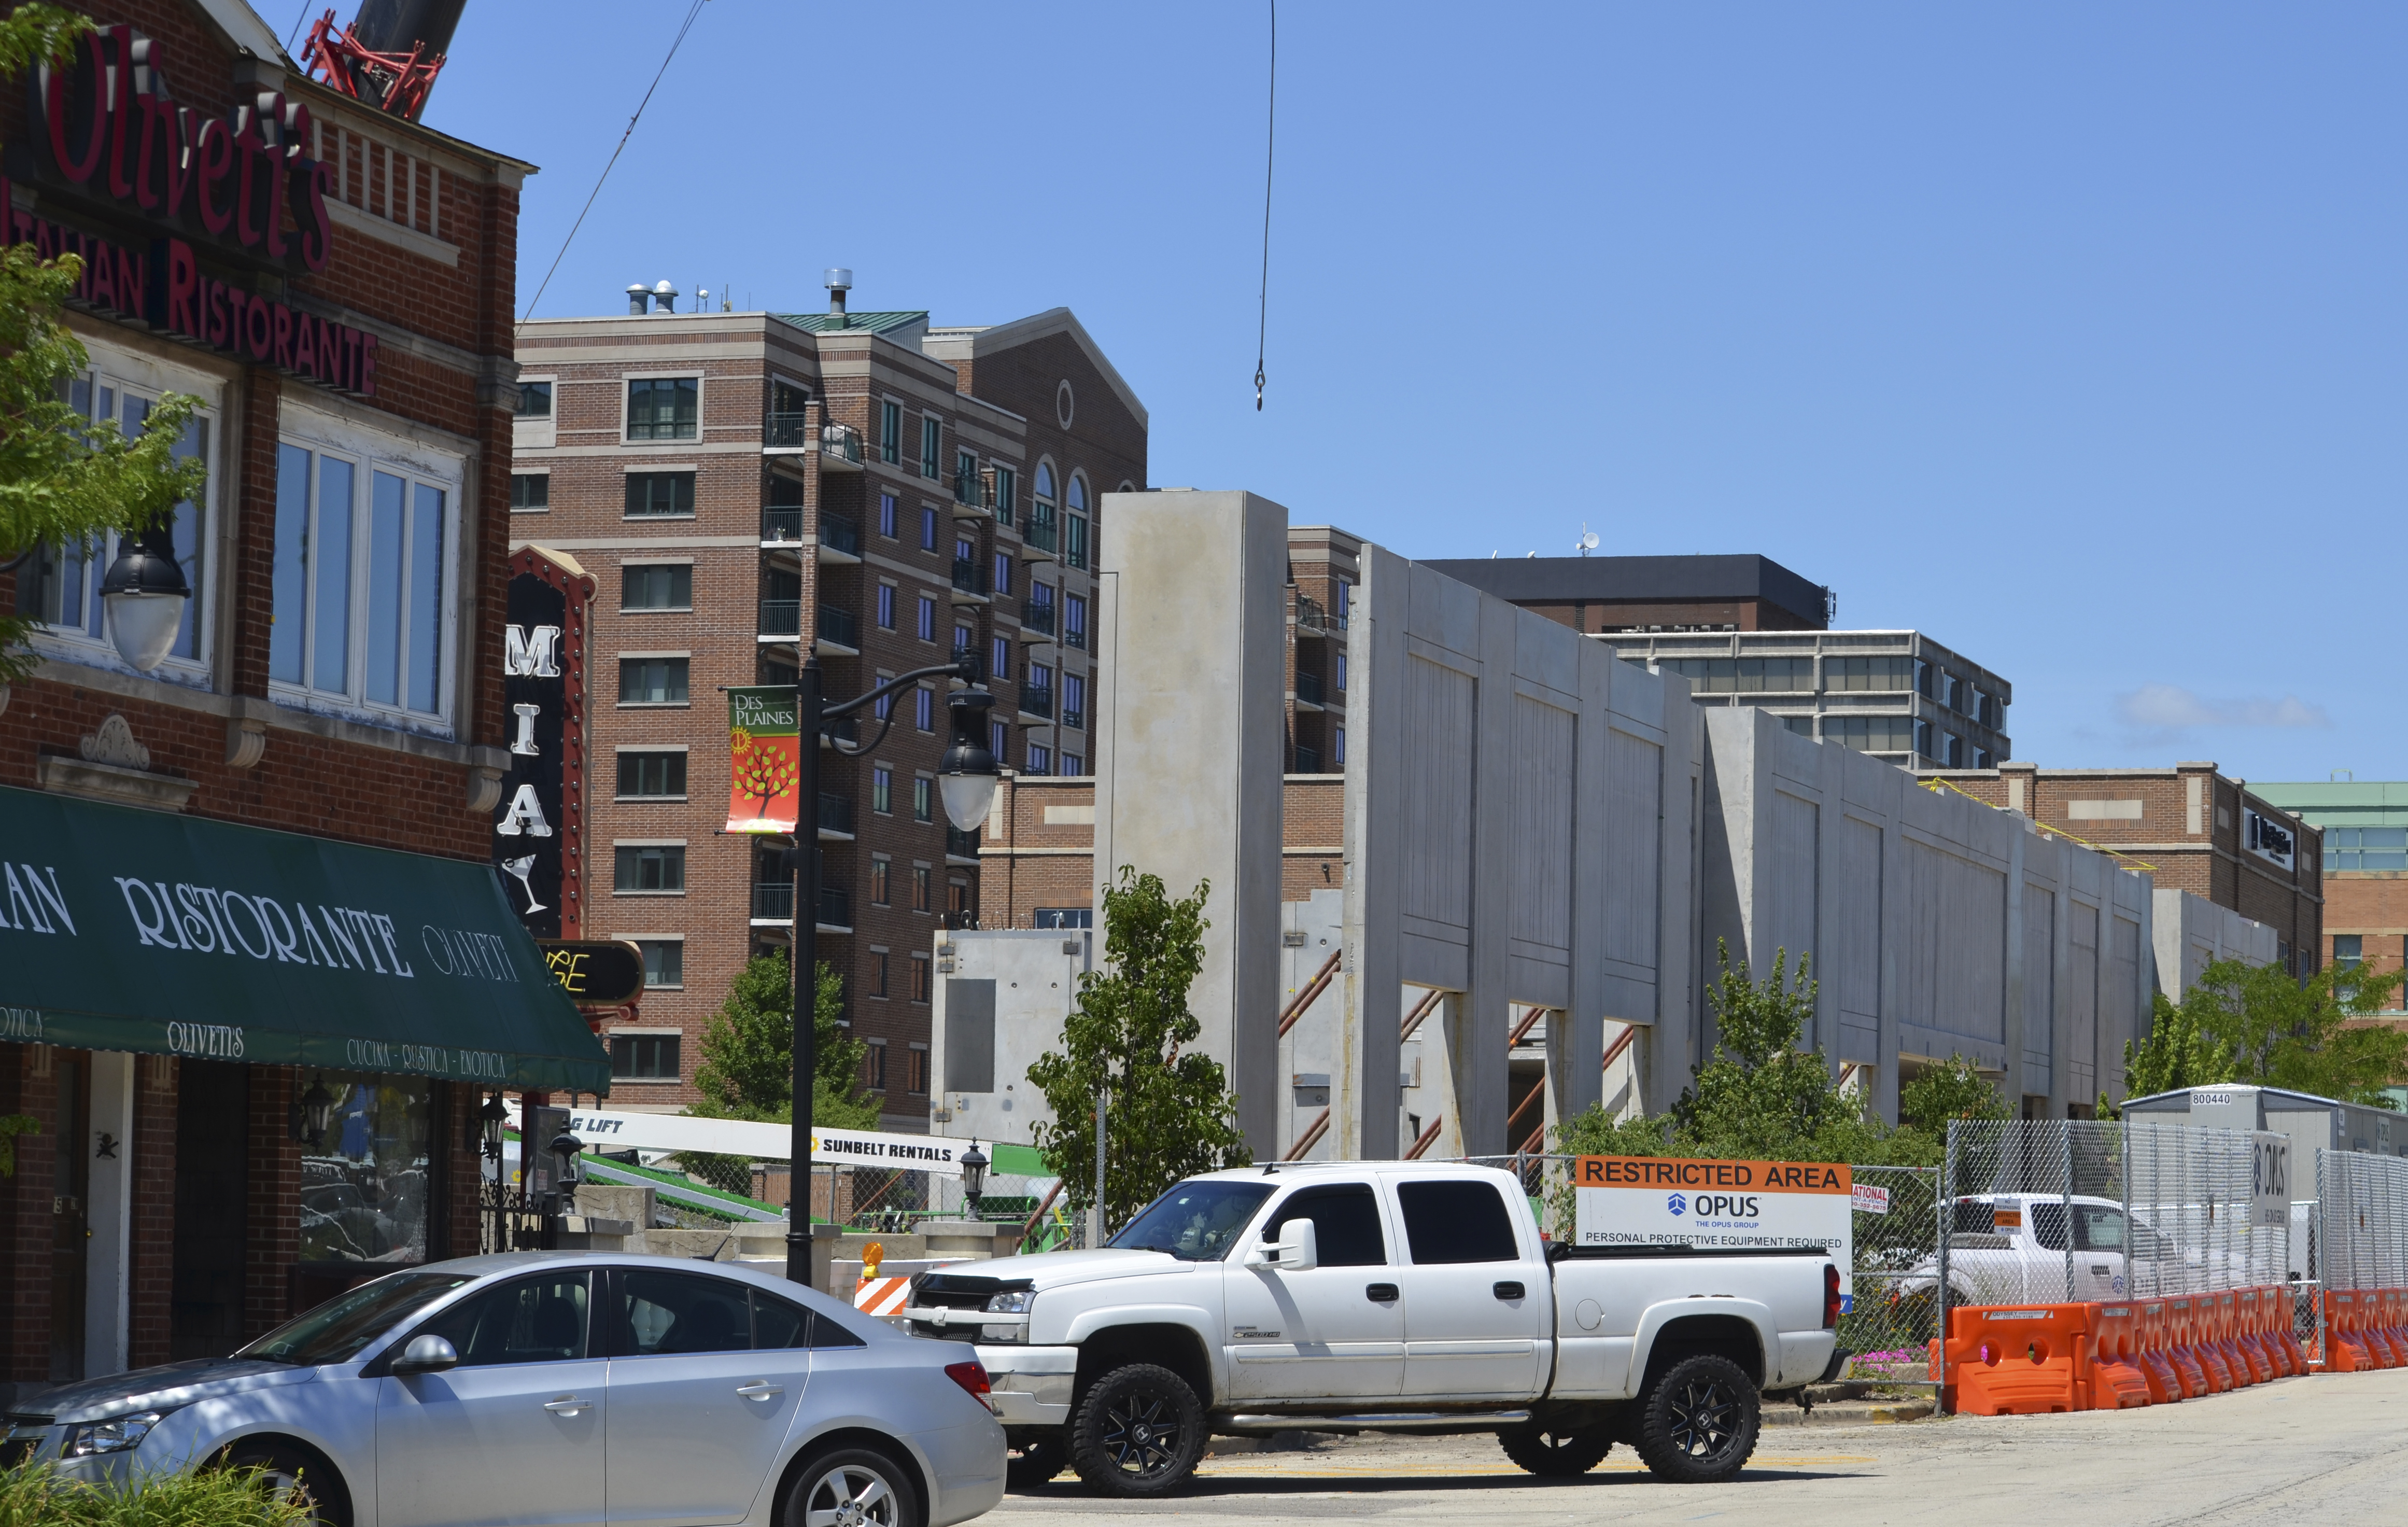 Construction Continues On The 113 Unit Opus Development Apartment Building Ellinwood Street In Downtown Des Plaines Last Wednesday July 18